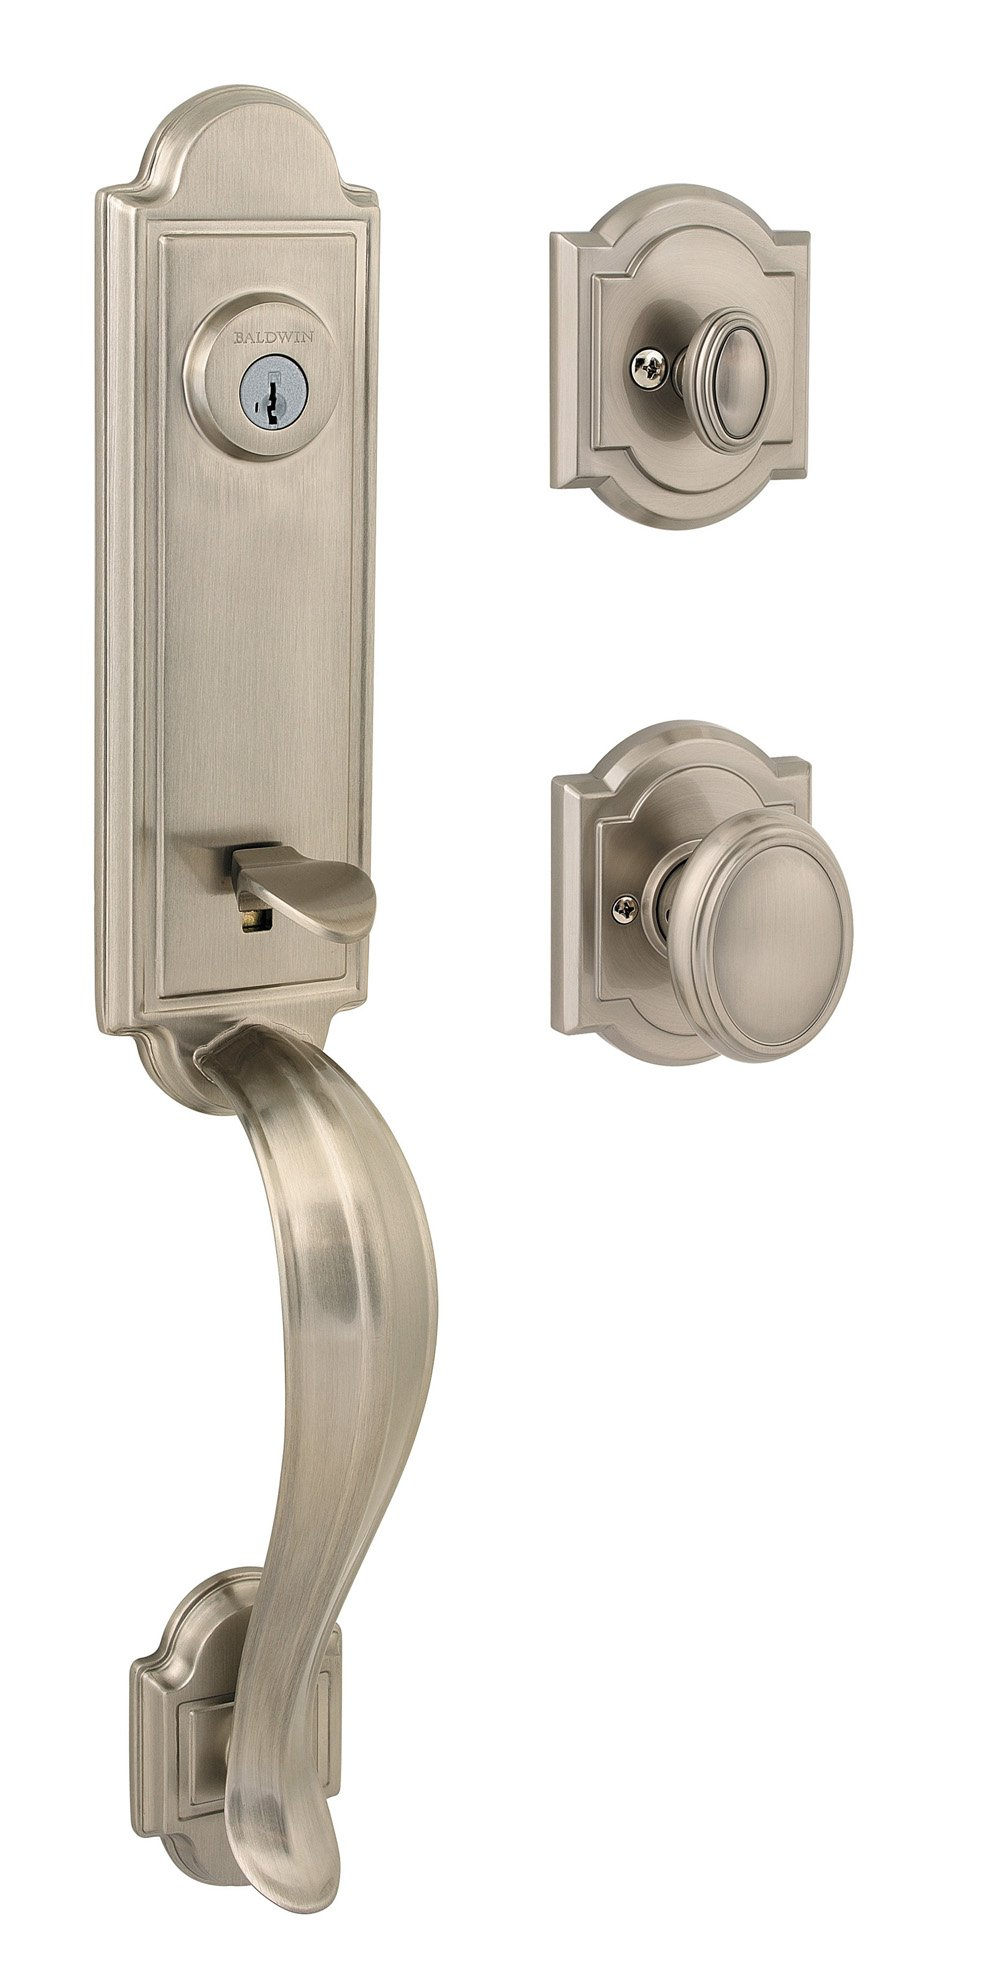 Baldwin Prestige  Avendale Single Cylinder Handleset with Carnaby Knob featuring SmartKey in Satin Nickel